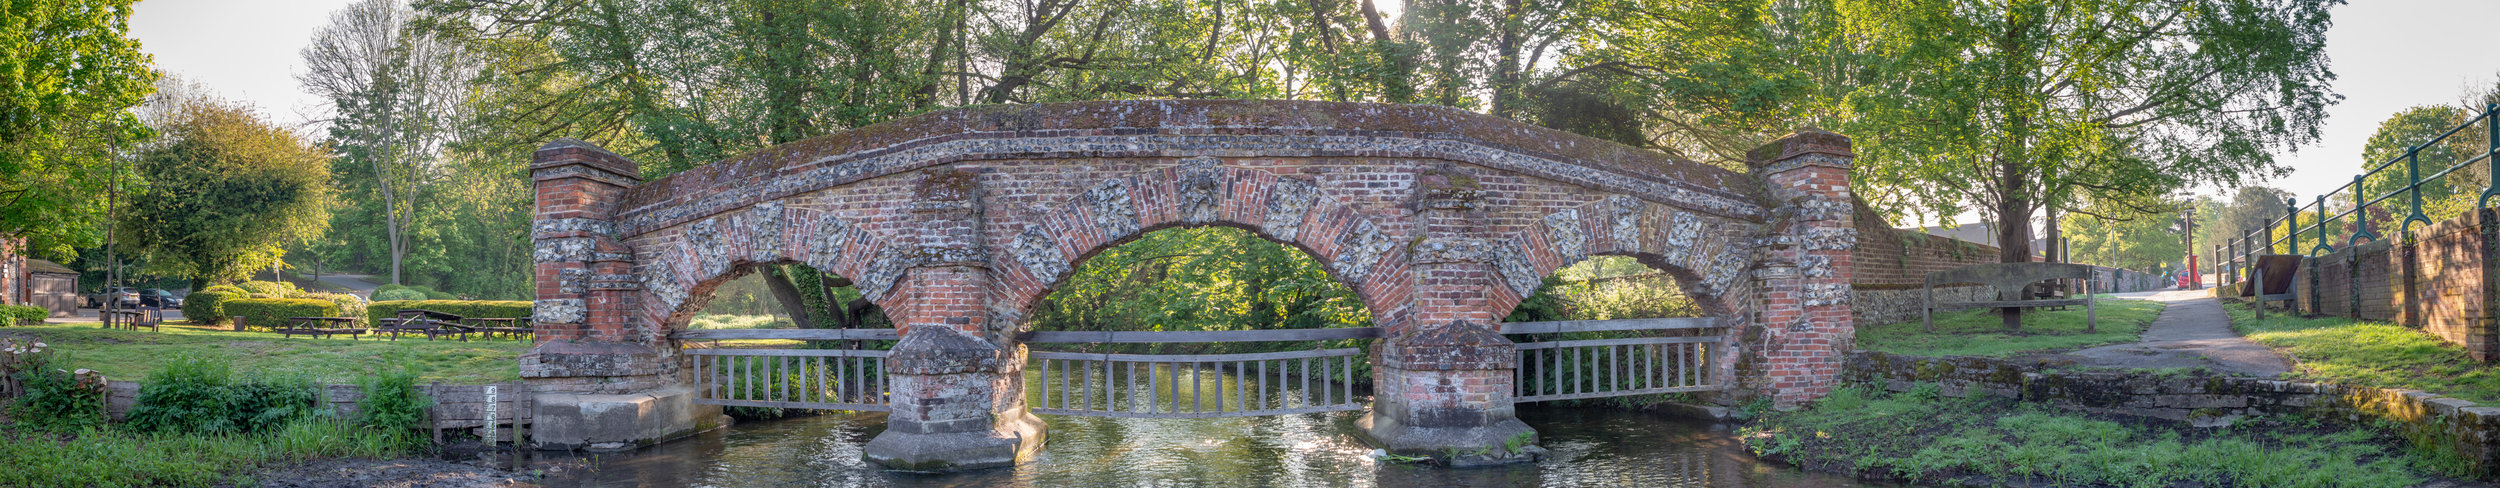 The Cattle Screen Bridge at Farningham